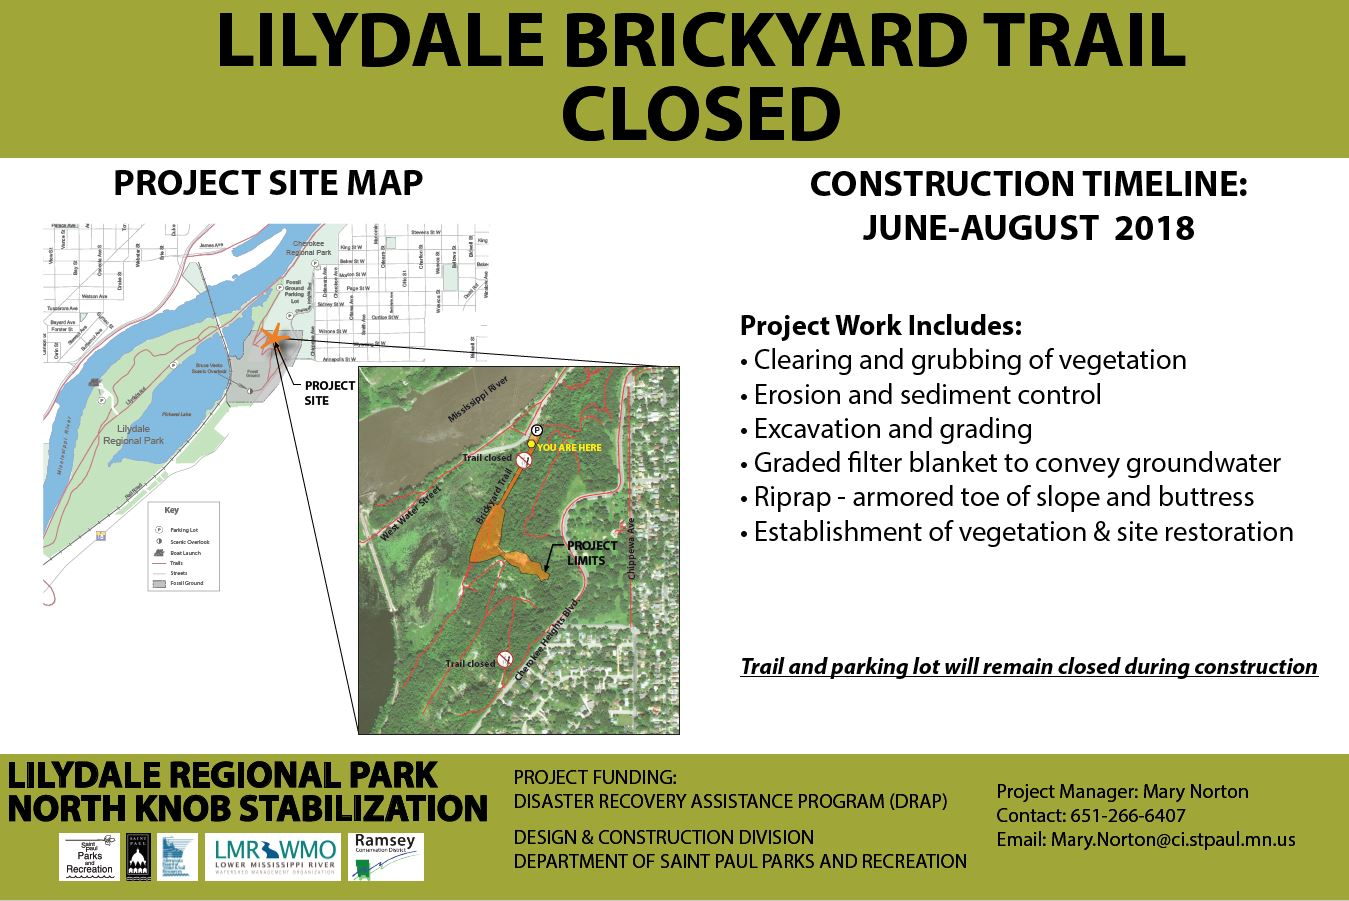 Brickyard Trail Closed for Construction